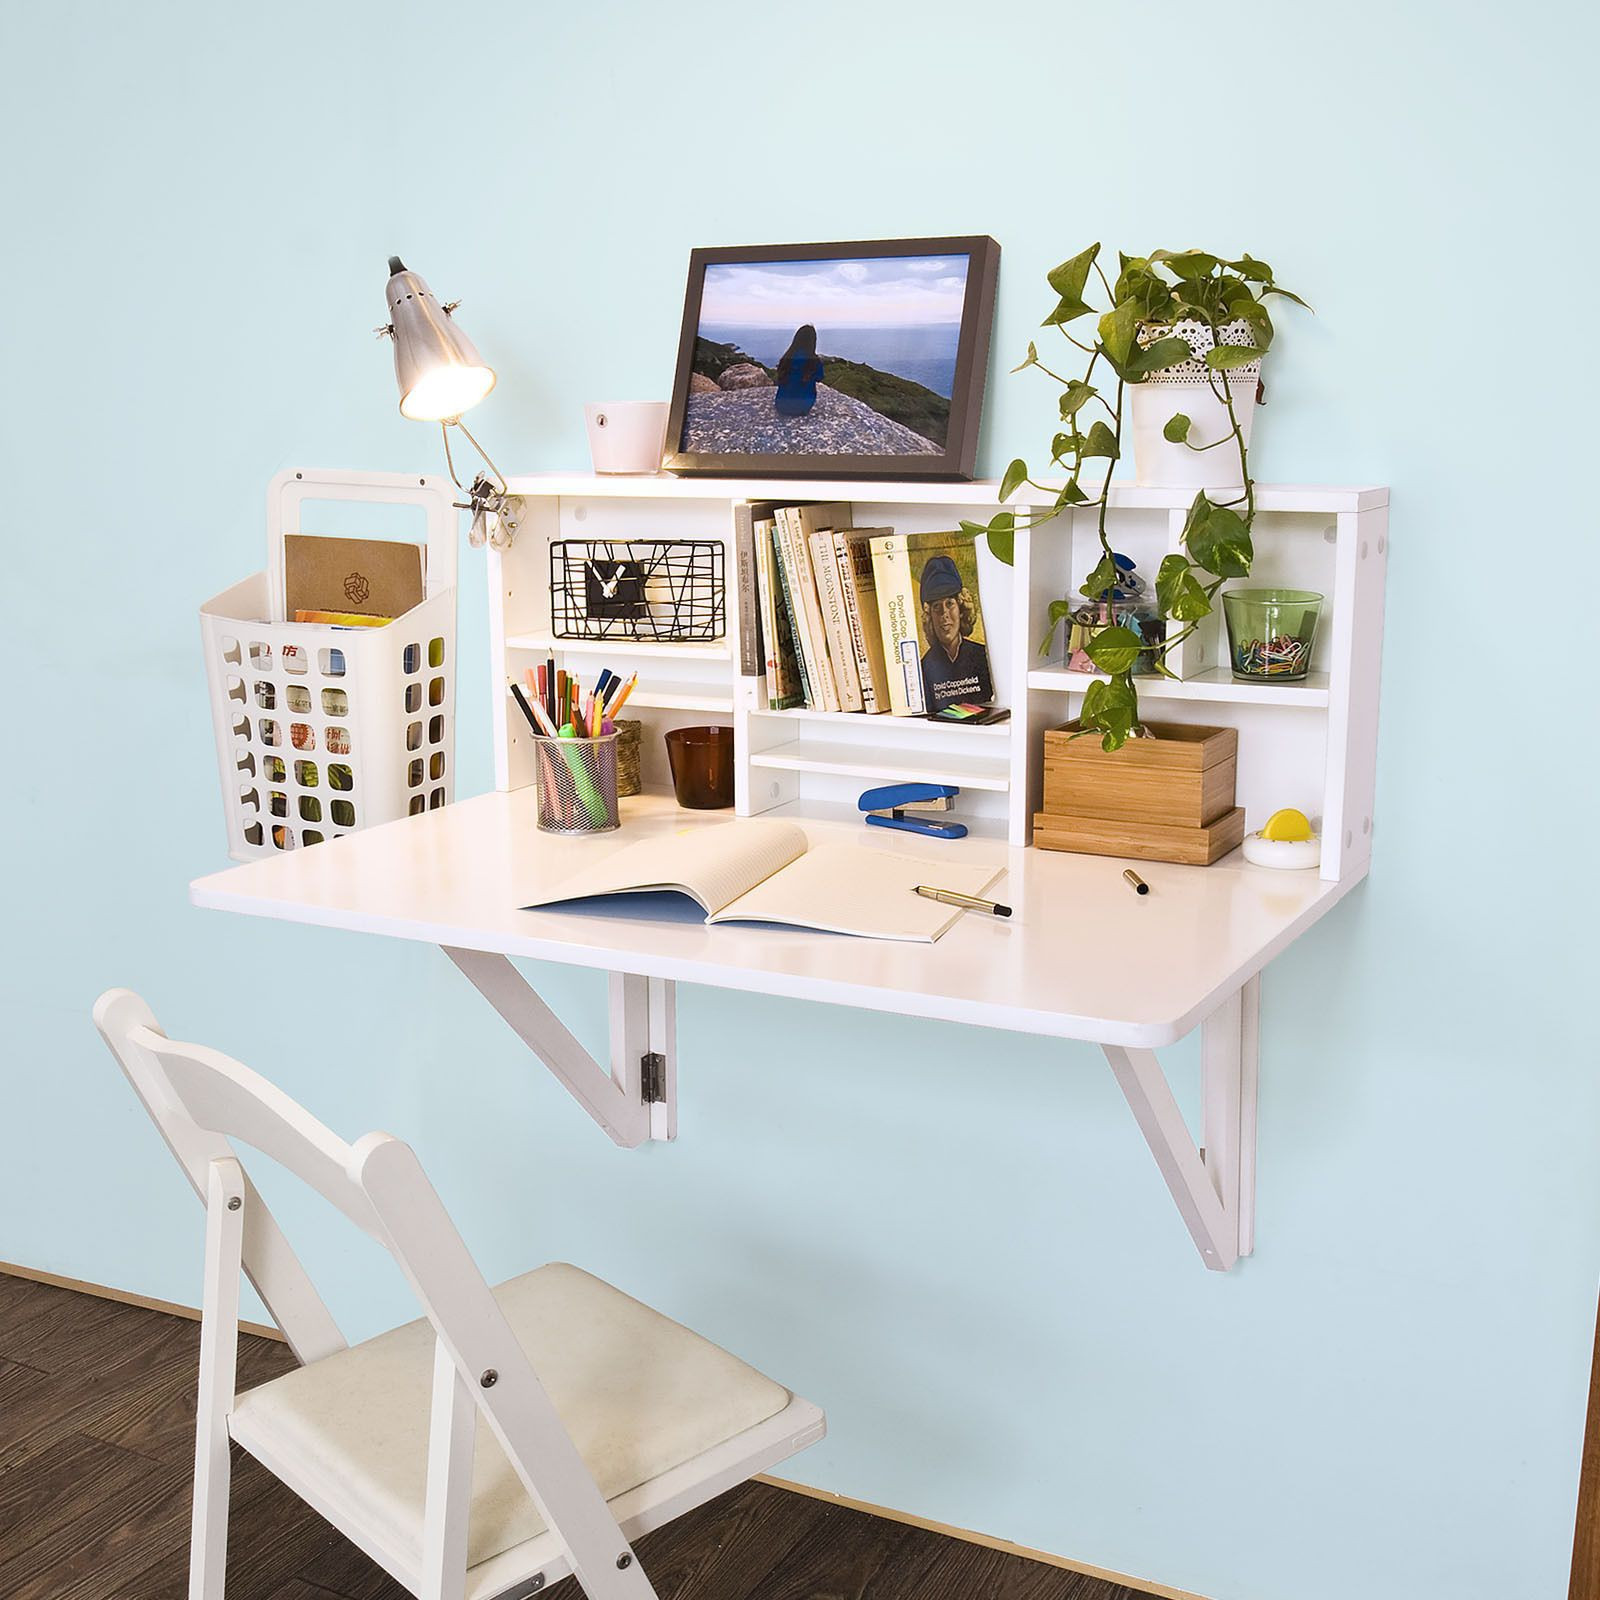 Best ideas about DIY Wall Table . Save or Pin Wall mounted foldable table Wall Shelf Table Kitchen Now.